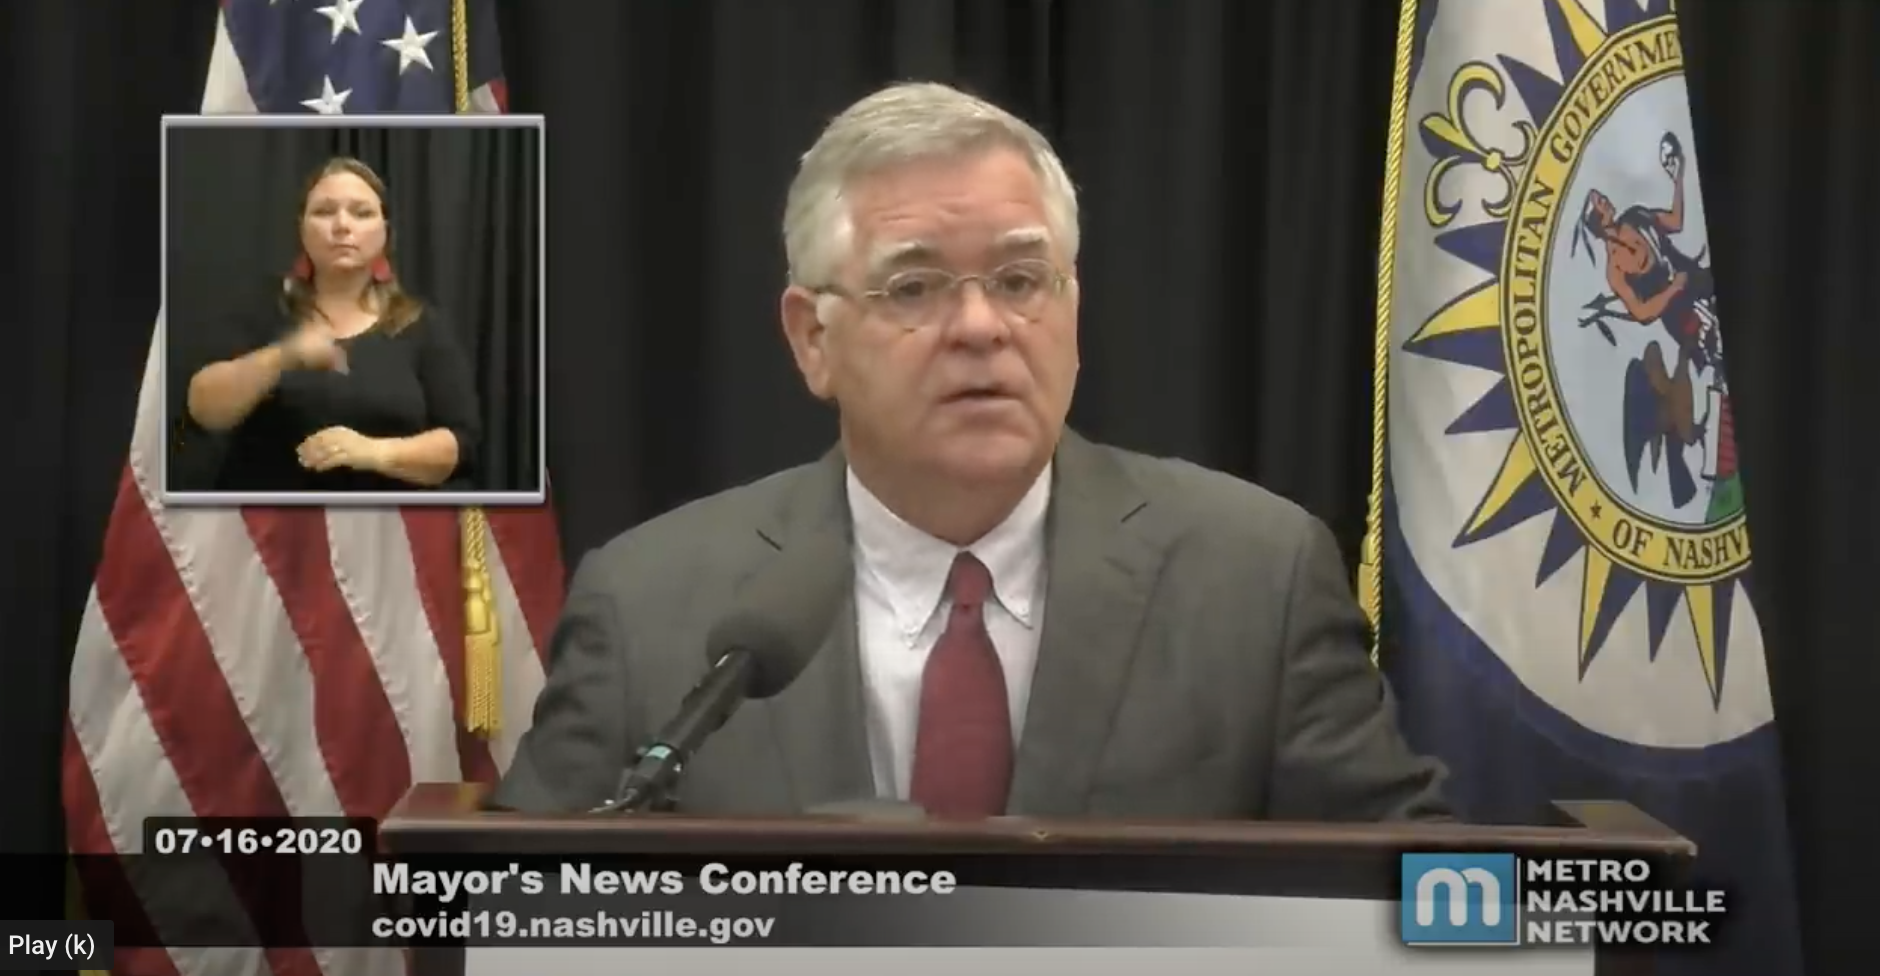 Mayor John Cooper speaks at his July 16 press conference. (Photo: Metro Nashville Network YouTube channel)